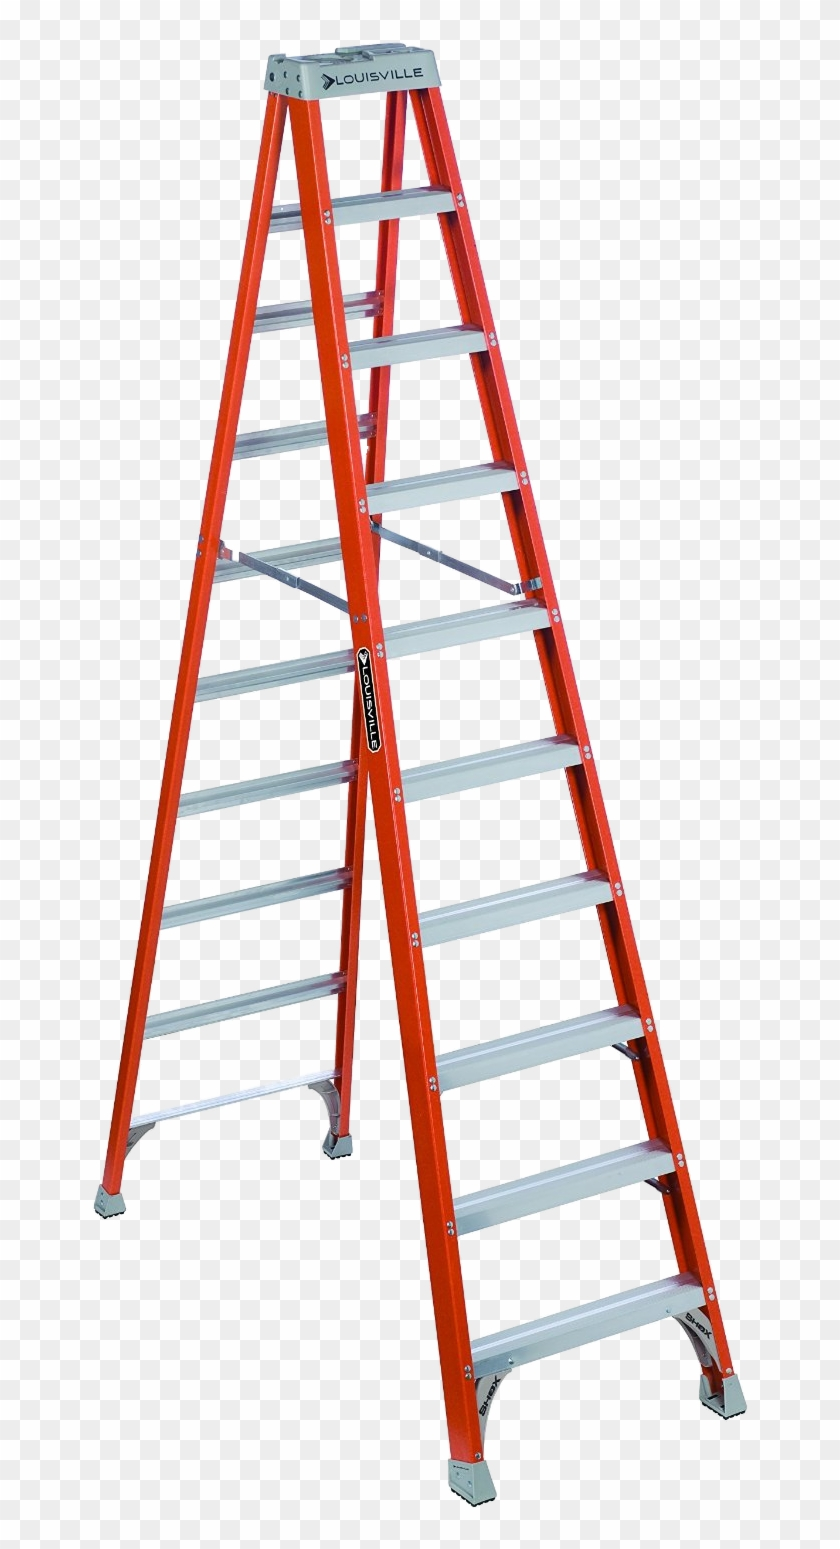 Step Ladder Png - Louisville 10 Ft Ladder #219991